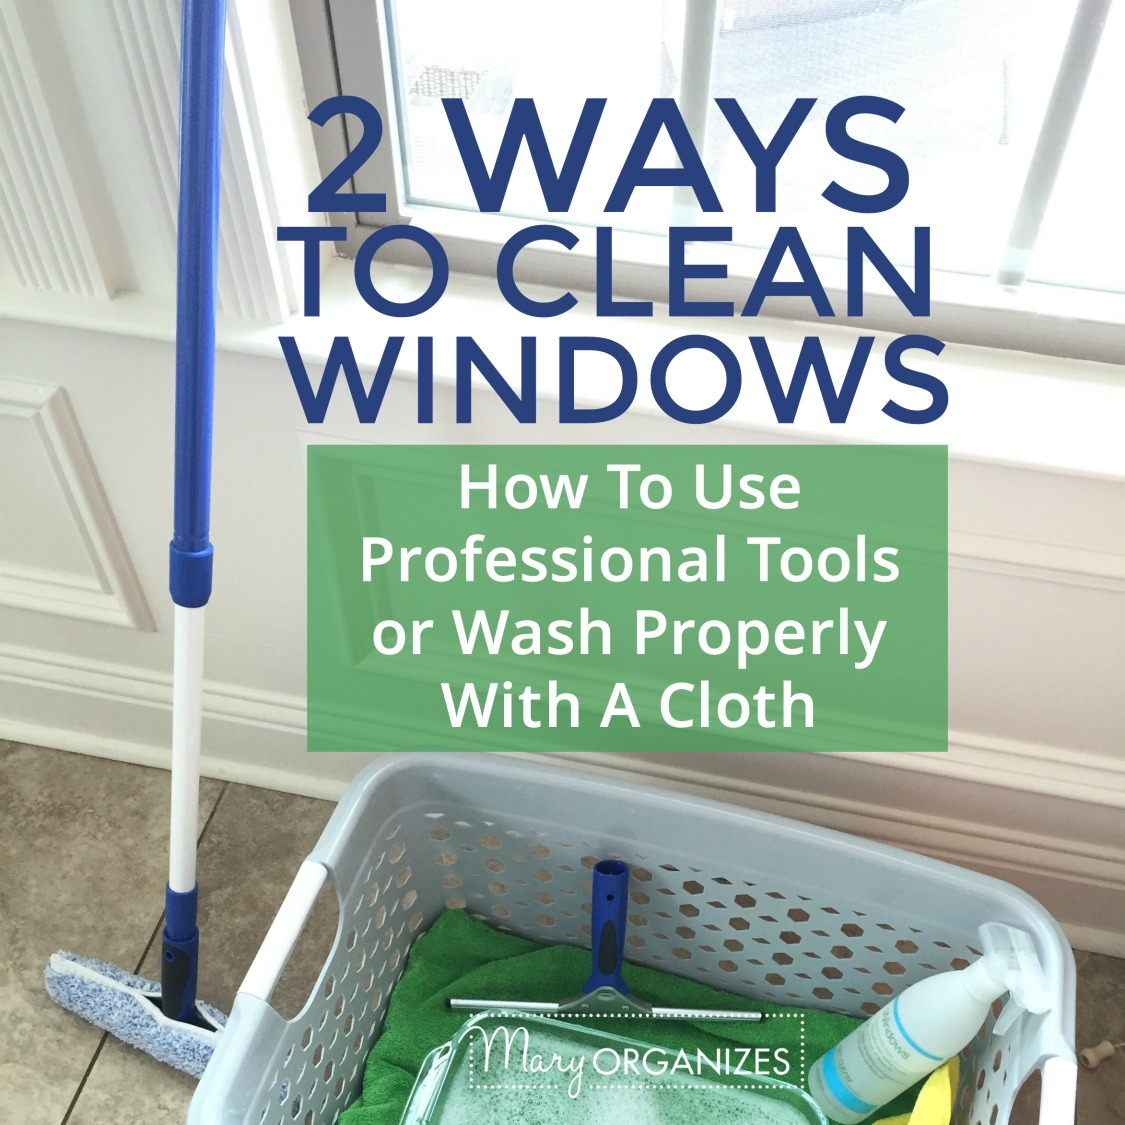 2 ways to clean windows how to clean with professional for How to clean windows